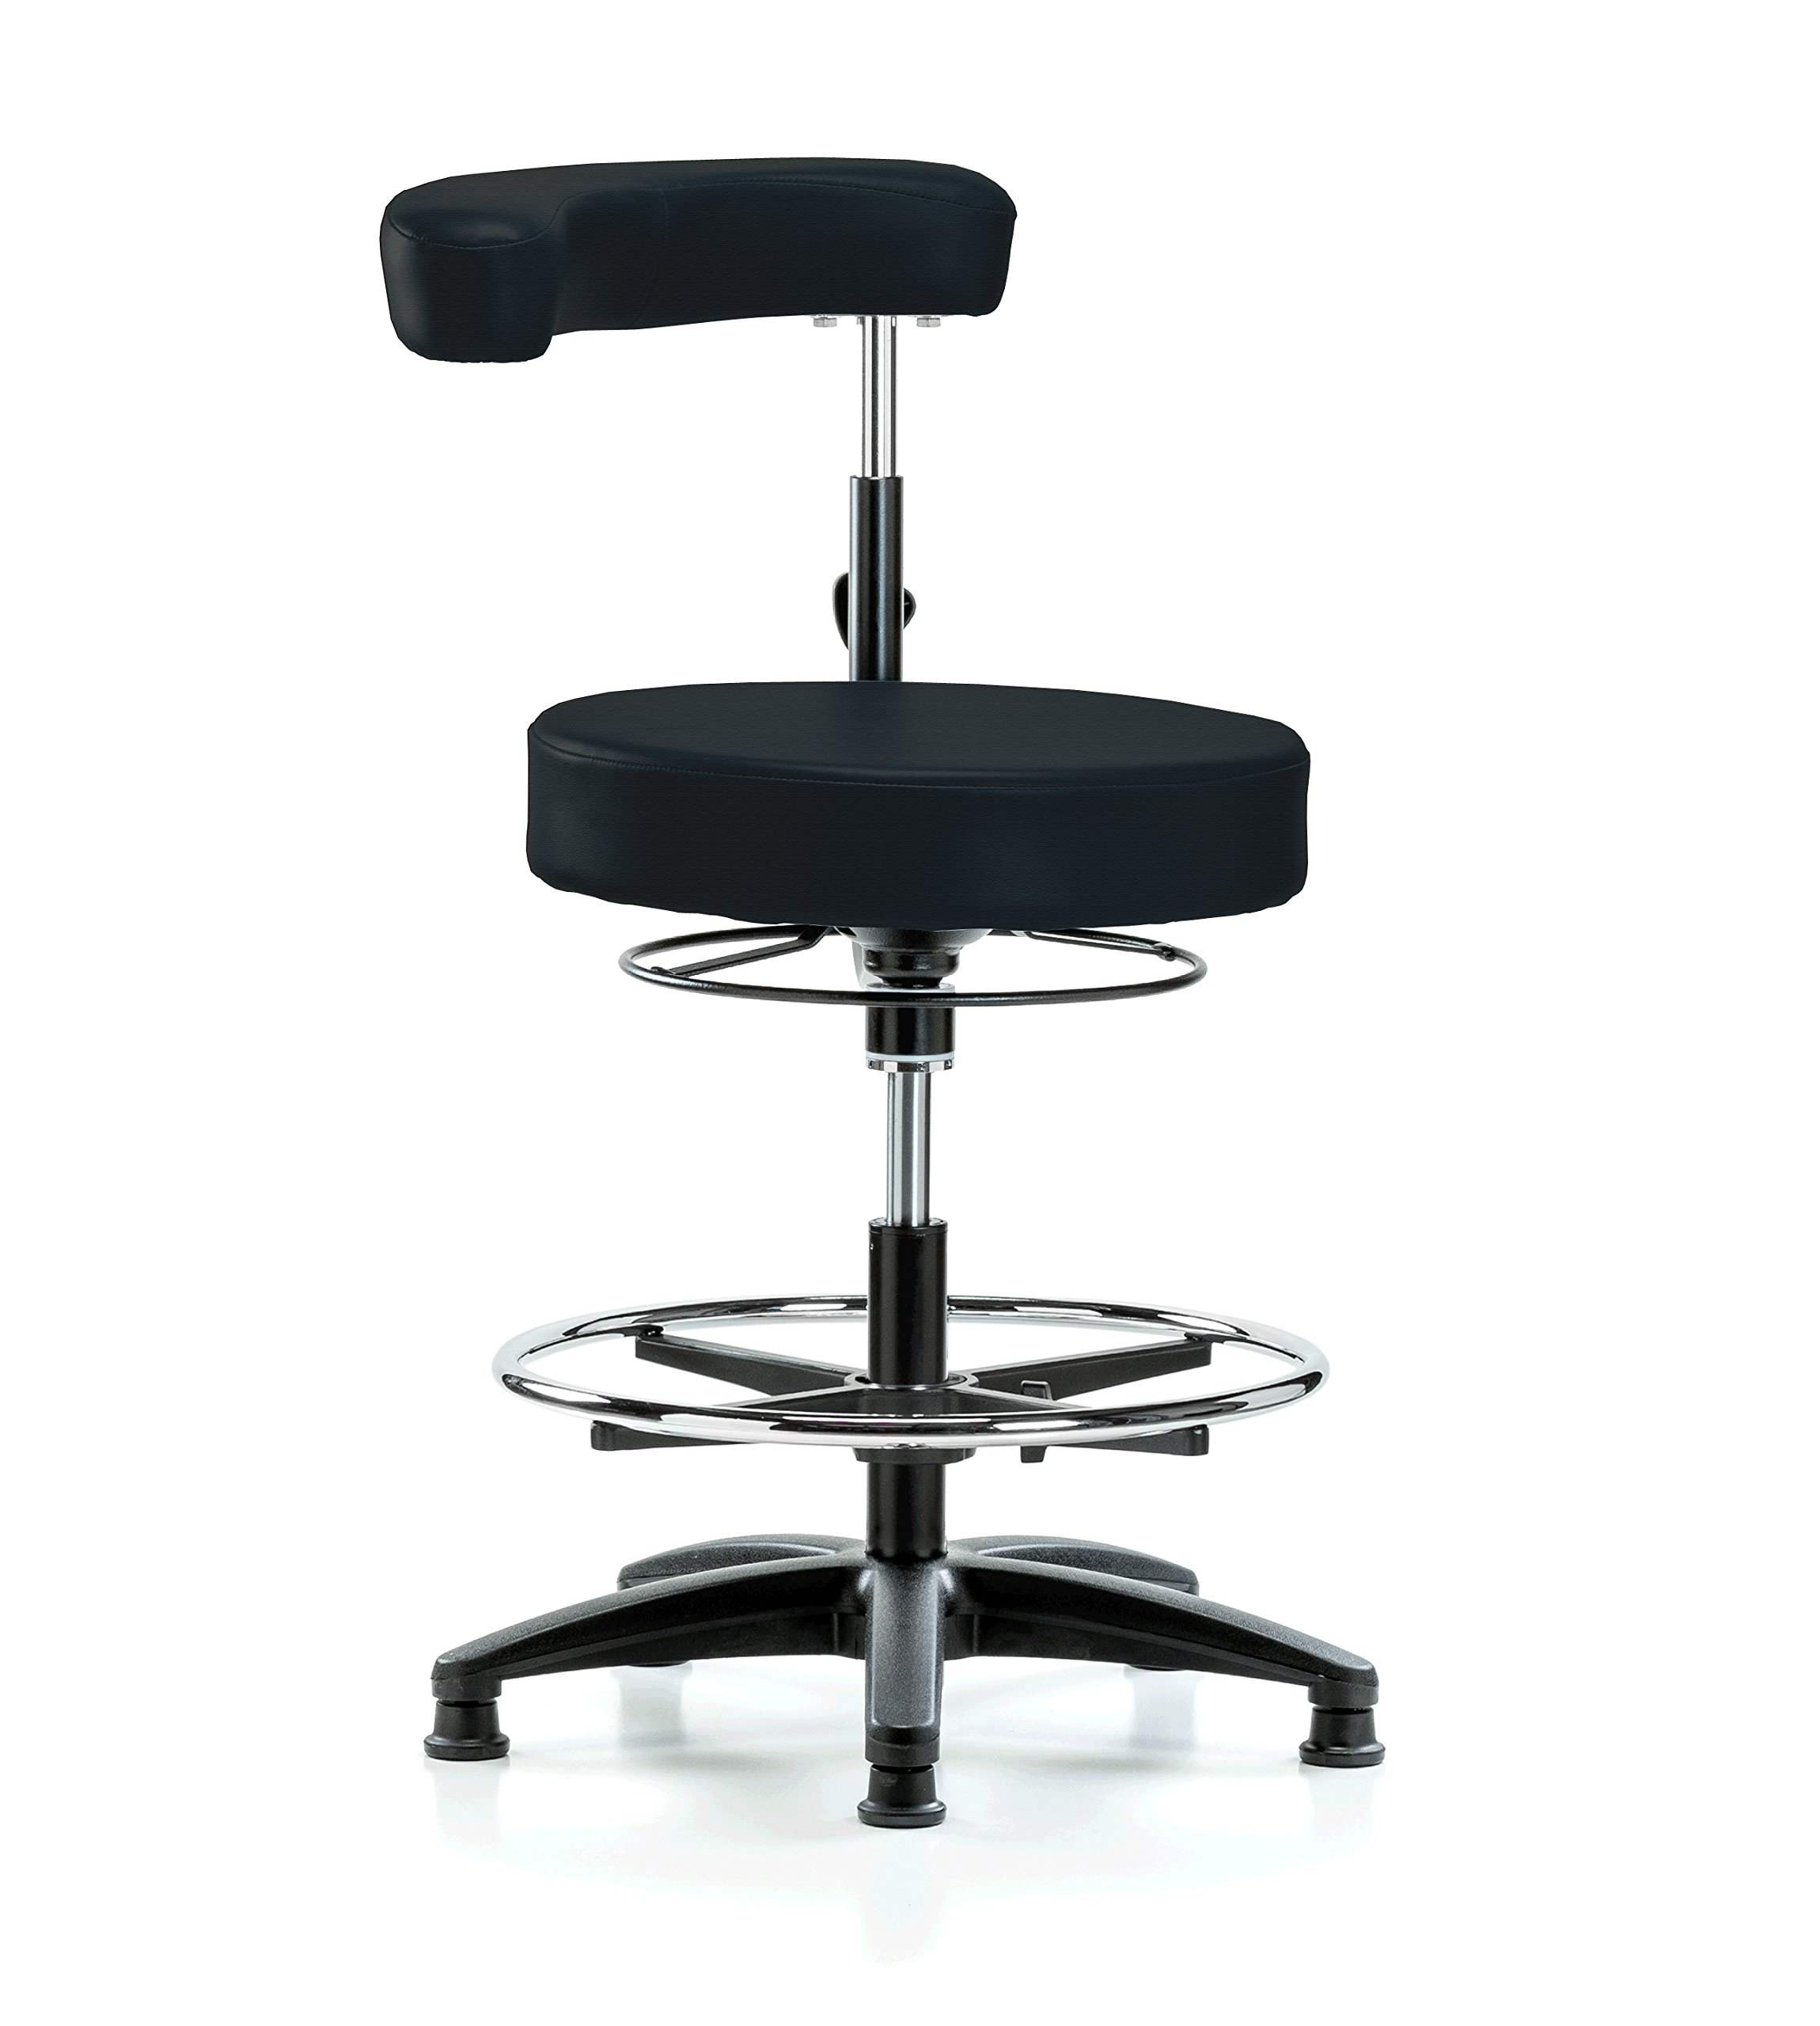 PERCH Dental Stool Adjustable Height with Procedure Arm and Foot Ring, Stationary Caps, Workbench Height (Black Fabric)